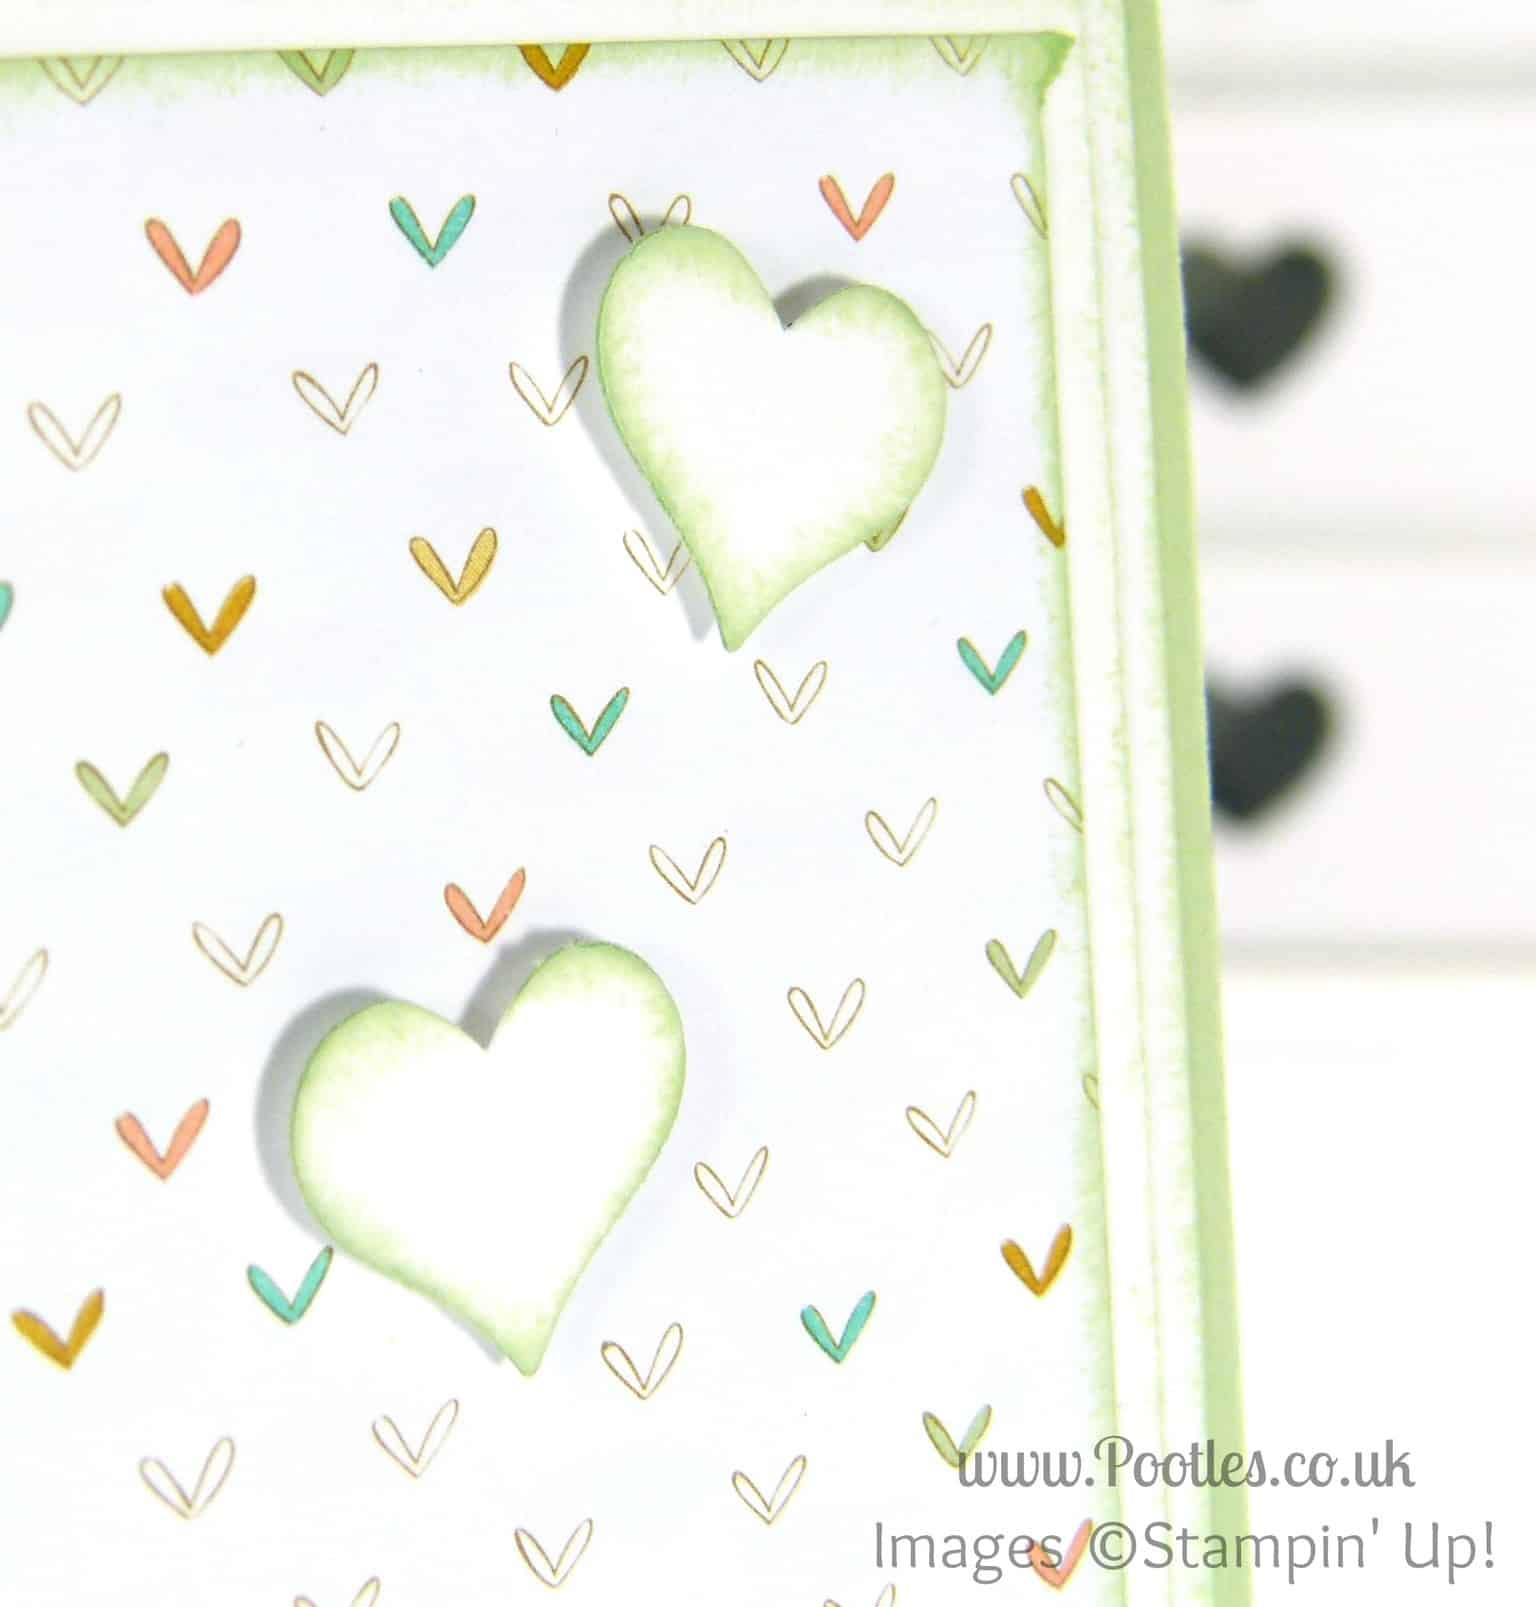 Stampin' Up! UK Pootles - Lullaby Baby We've Grown Punching Detail